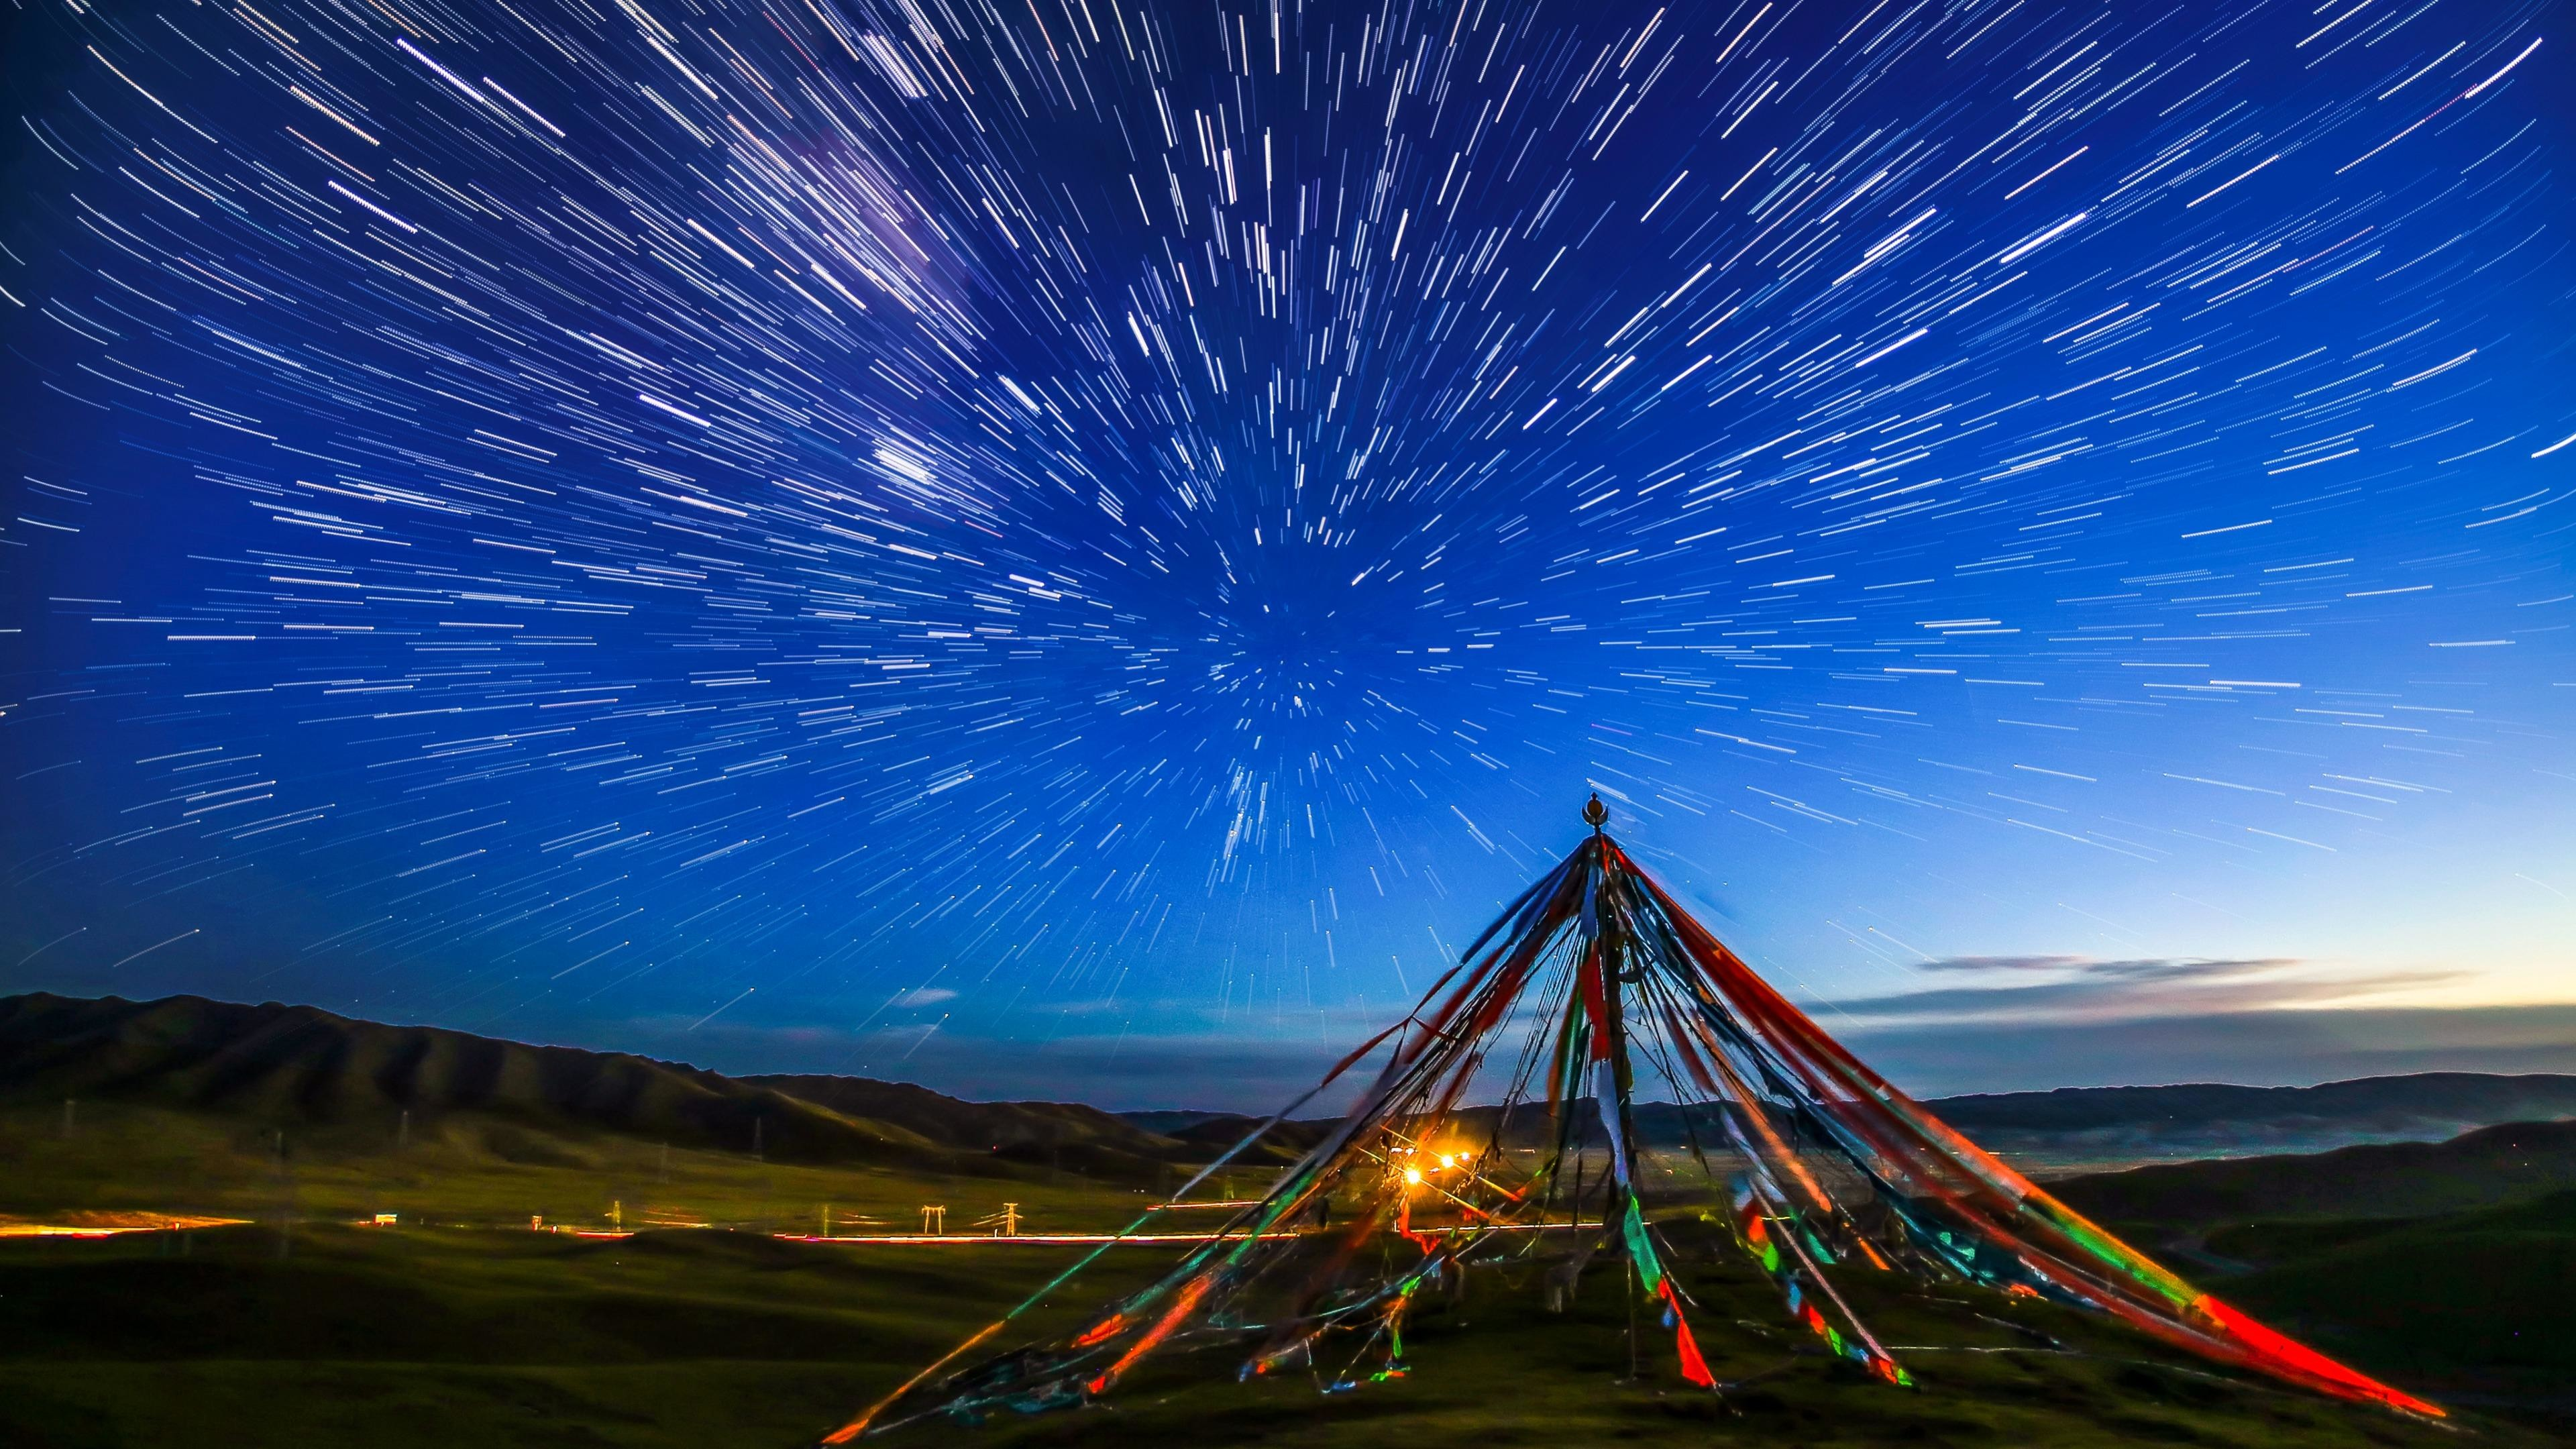 Res: 3840x2160, Prayer Flags And Star Trails Wallpaper | Wallpaper Studio 10 | Tens of  thousands HD and UltraHD wallpapers for Android, Windows and Xbox